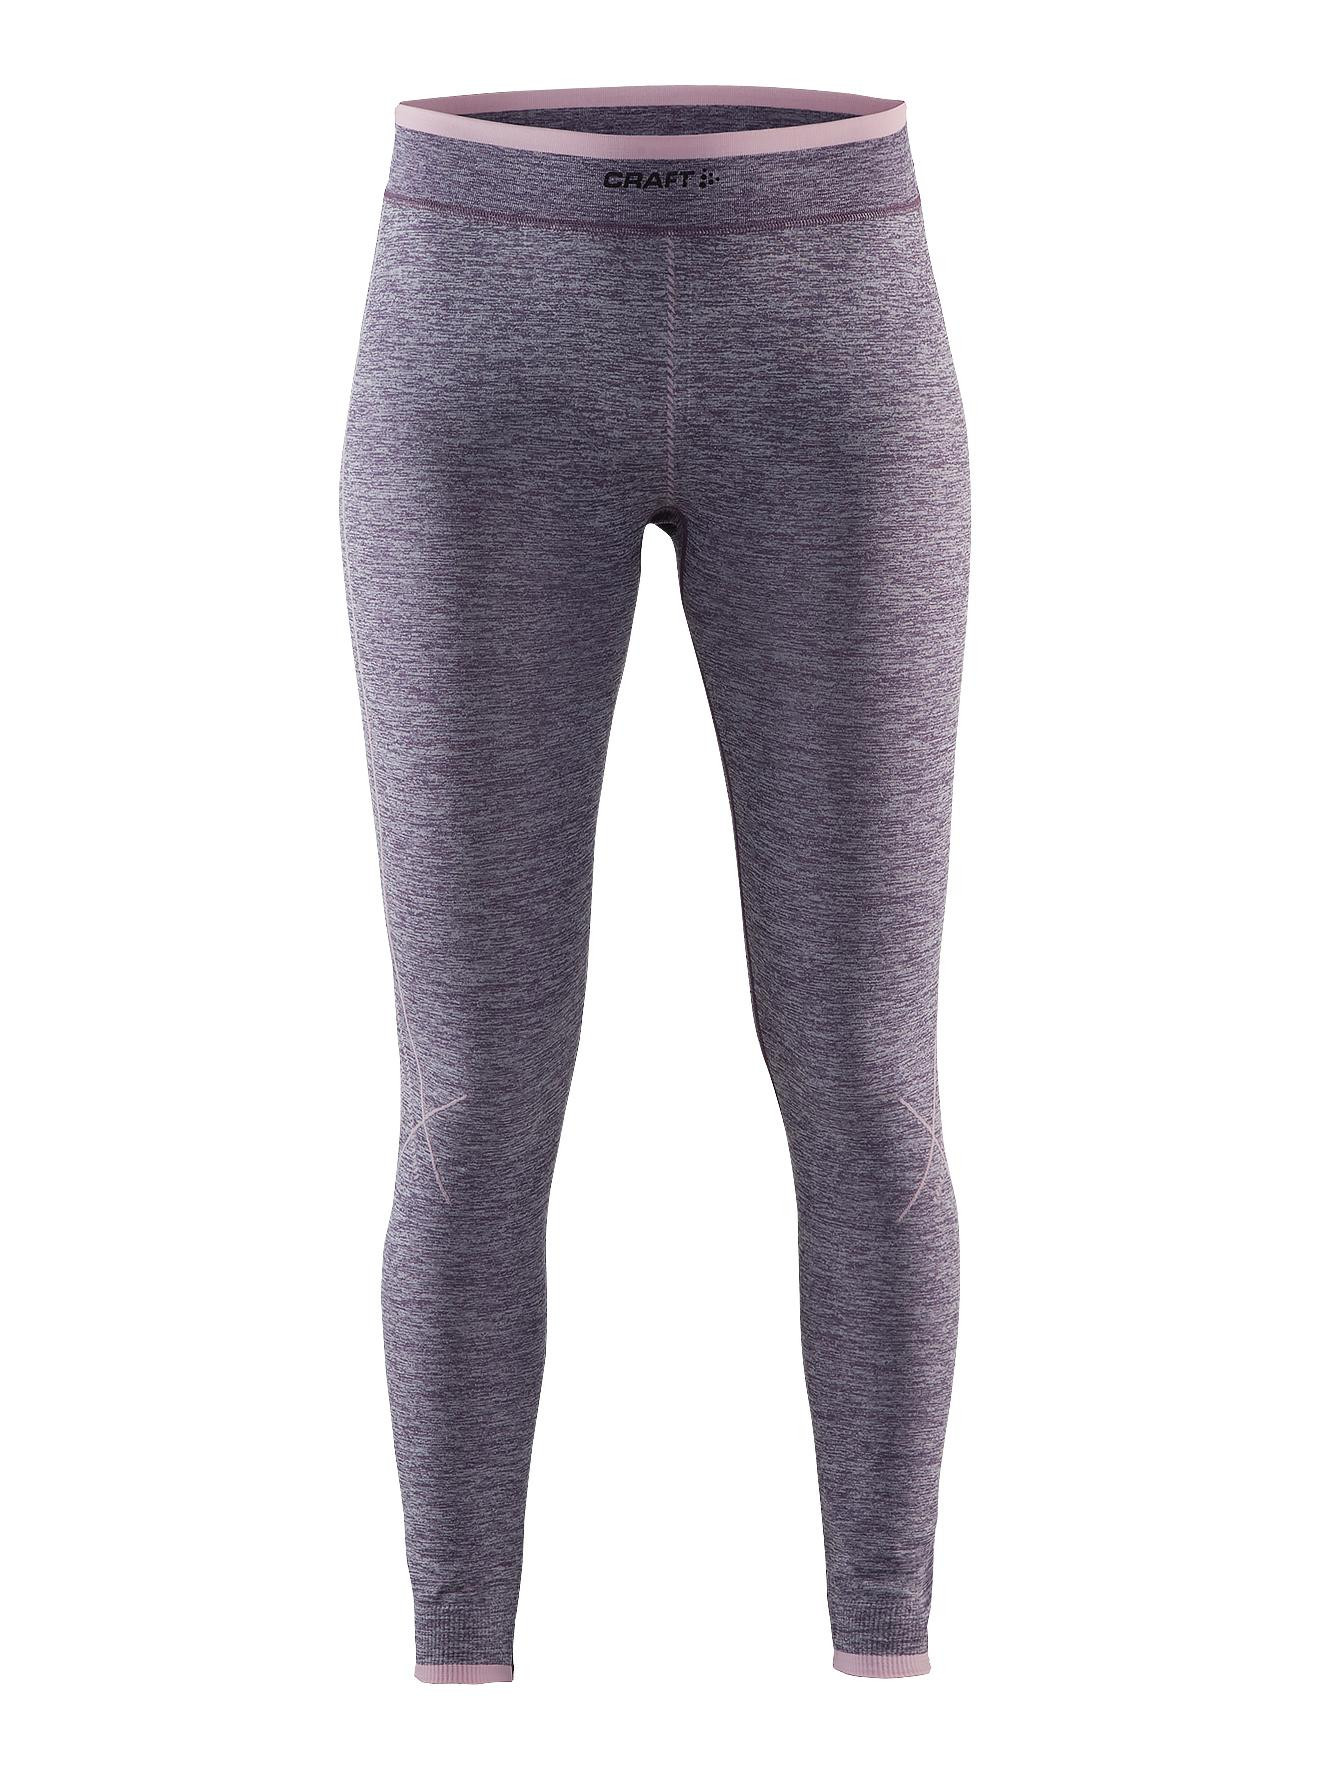 Термоштаны женские Craft Active Comfort Pants Woman Montana XS